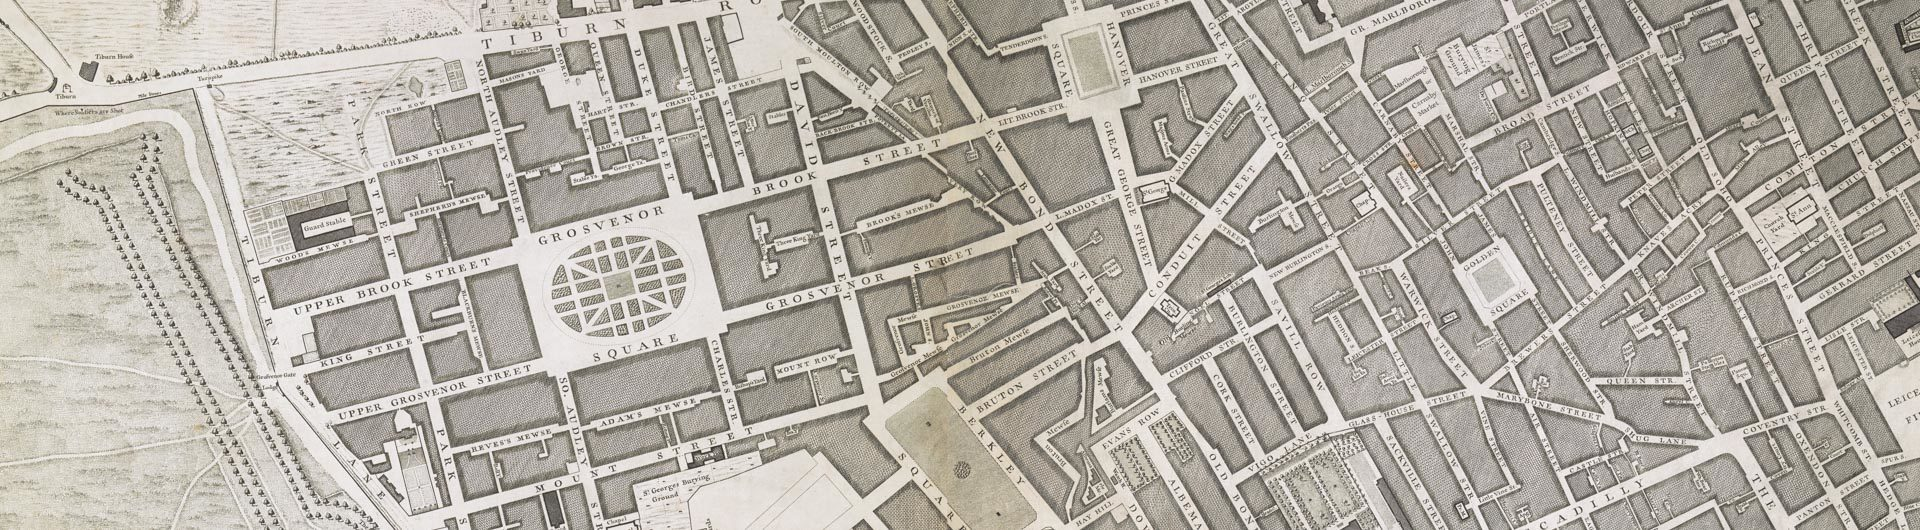 John Rocque, A Plan of the Cities of London and Westminster, The Borough of Southwark, And the Contiguous Buildings […] Engraved from an Actual Survey made by John Rocque (London: 1745) © British Library Board (Cartographic Items Maps Crace Port. 3.104, sheets A2 and B2)